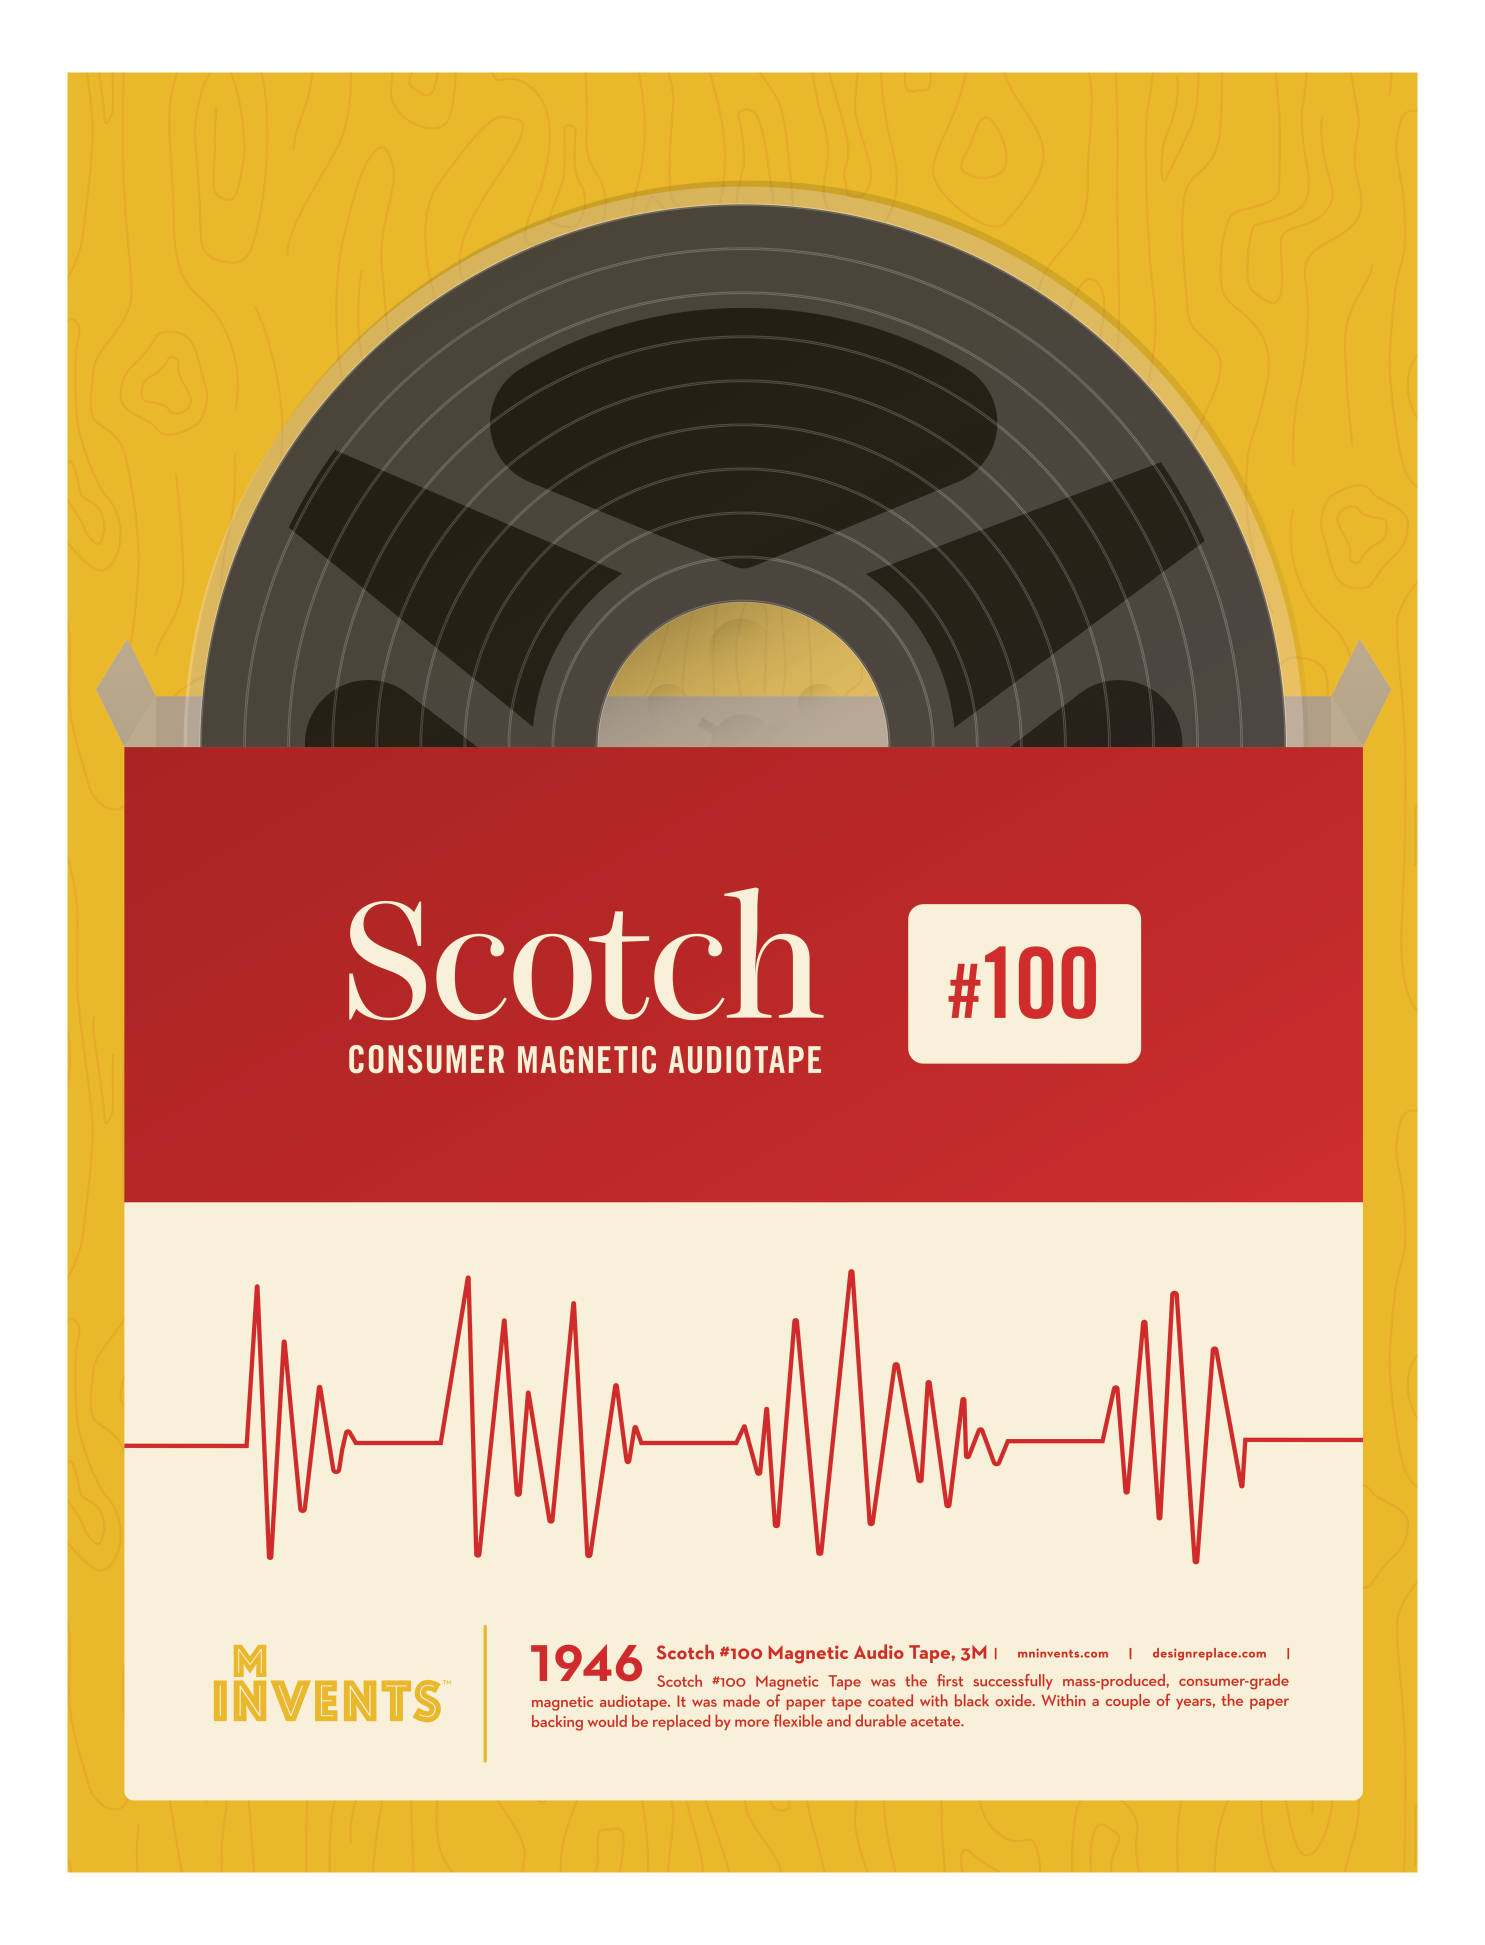 Scotch Consumer Magnetic Audiotape